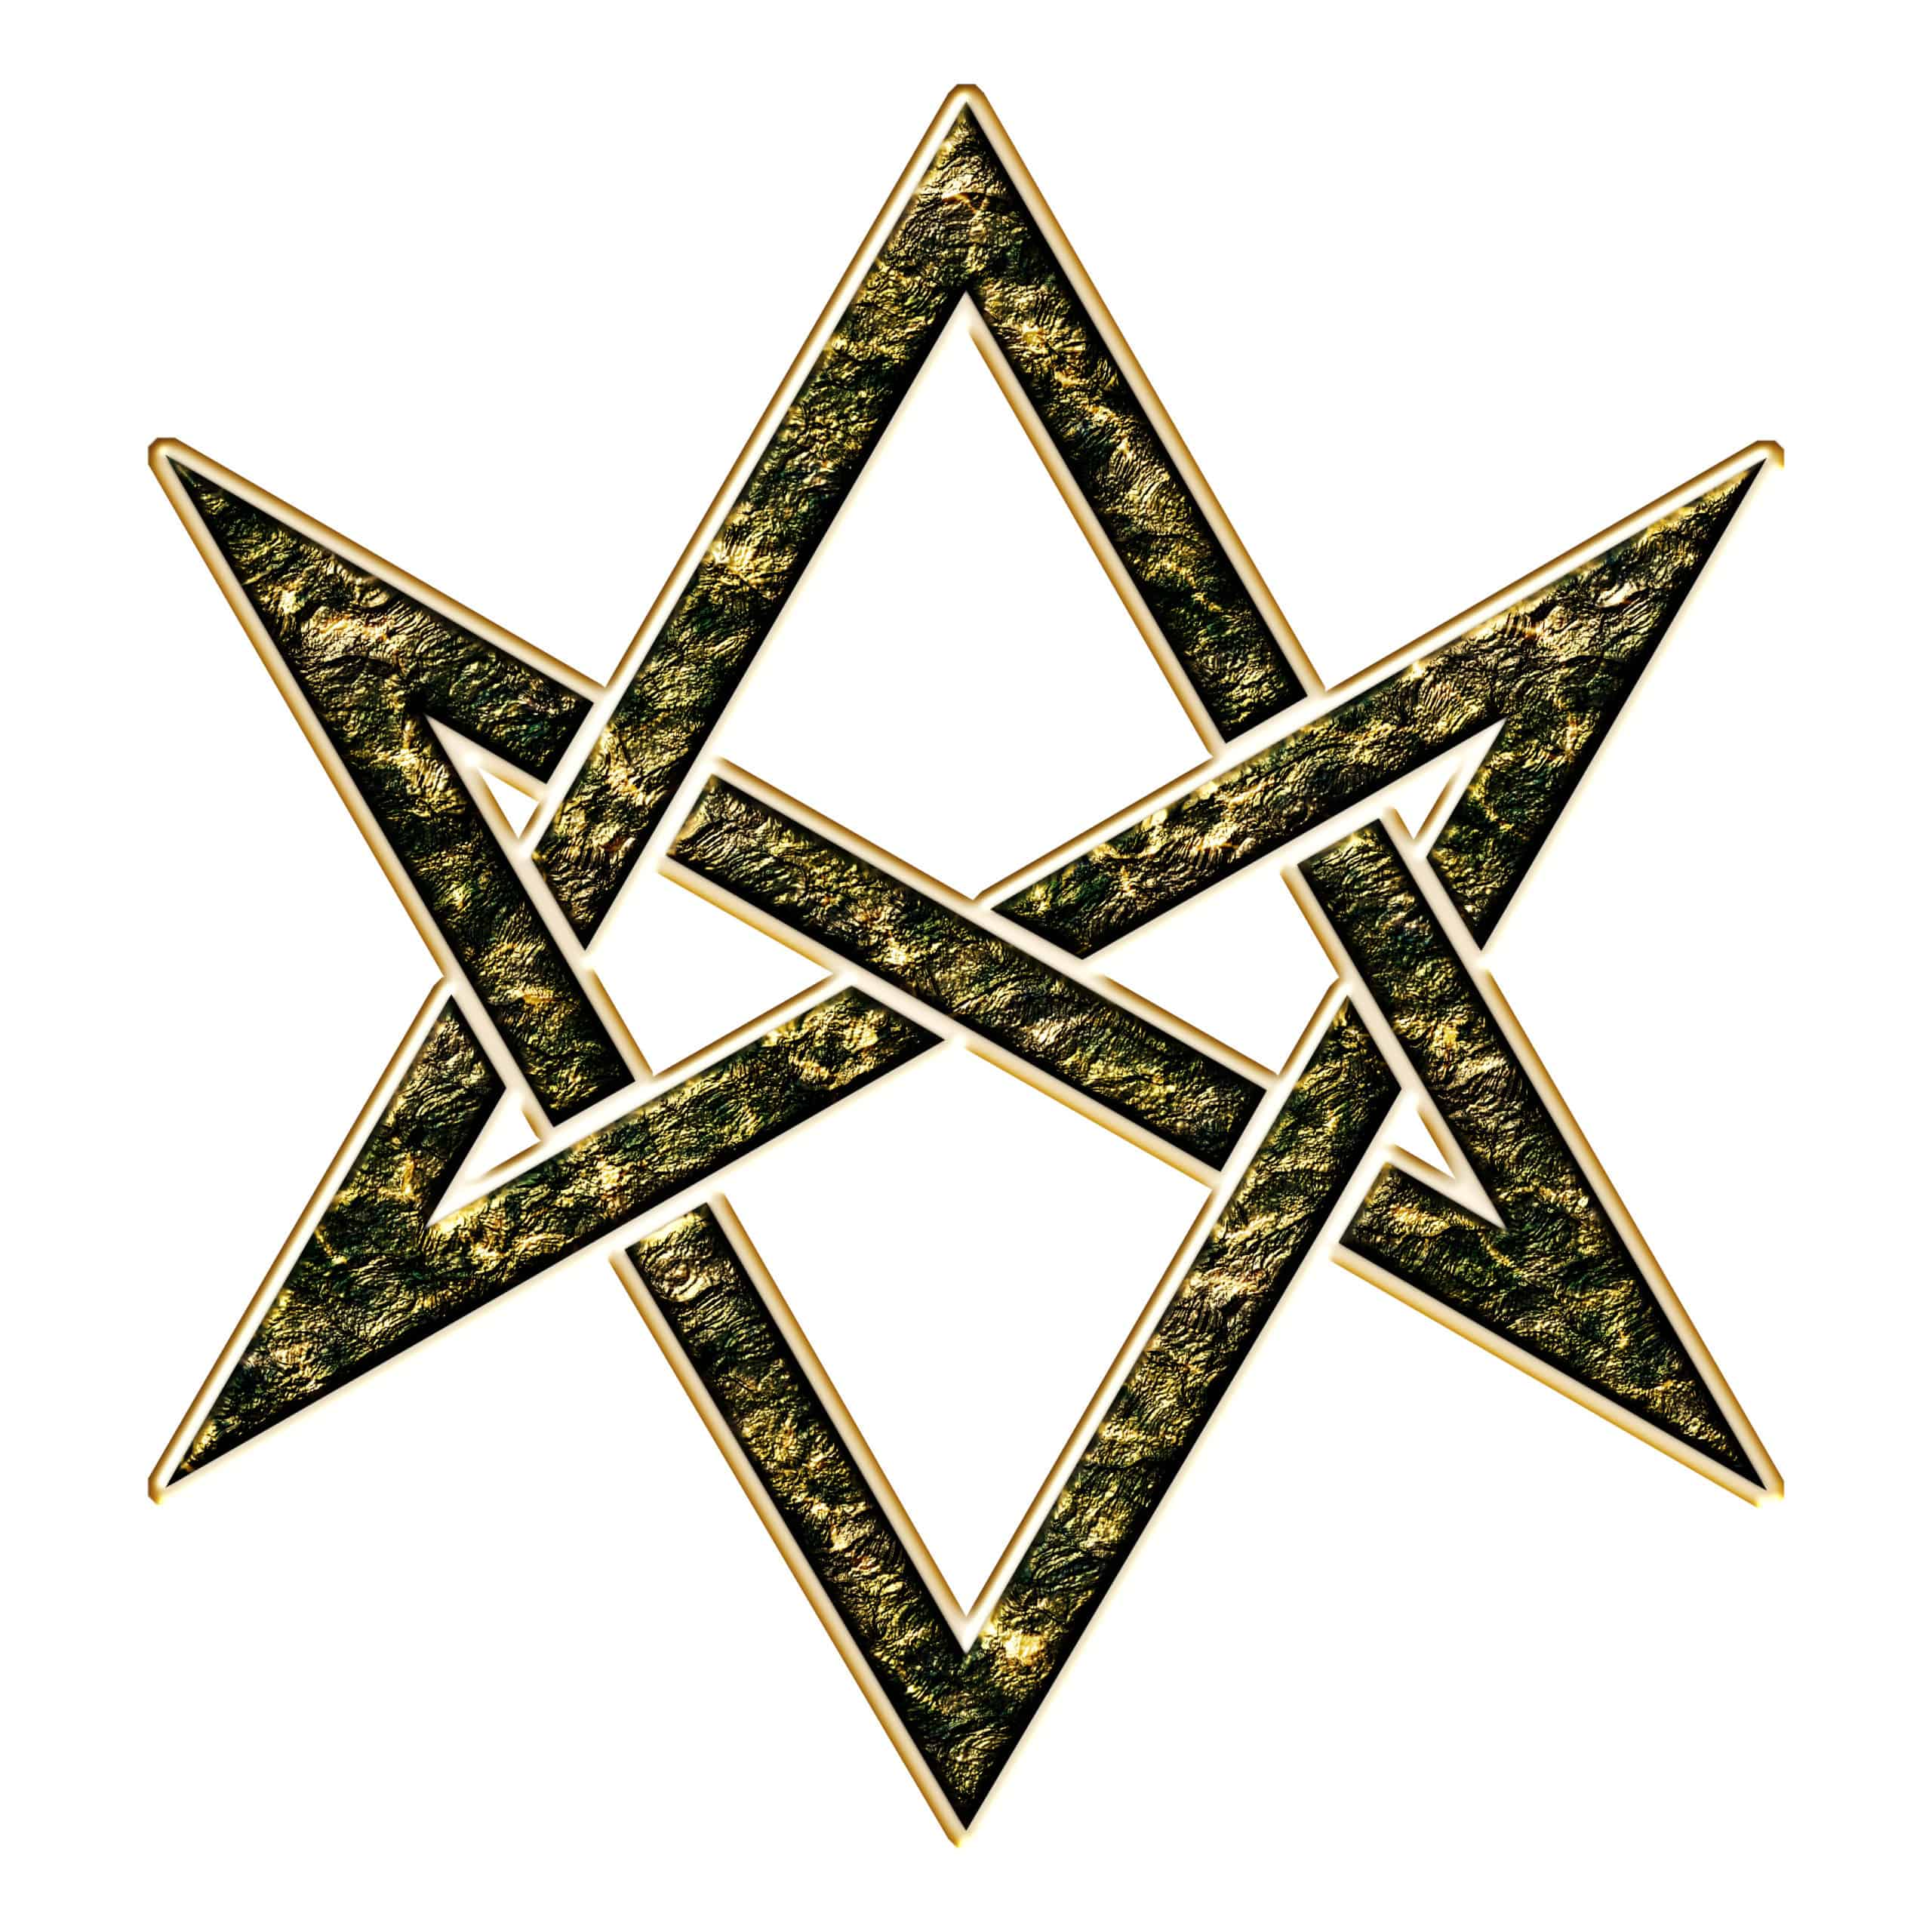 Unicursal Hexagram's Meaning and Origins Explained, Aleister Crowley's Symbol for Thelema Religion